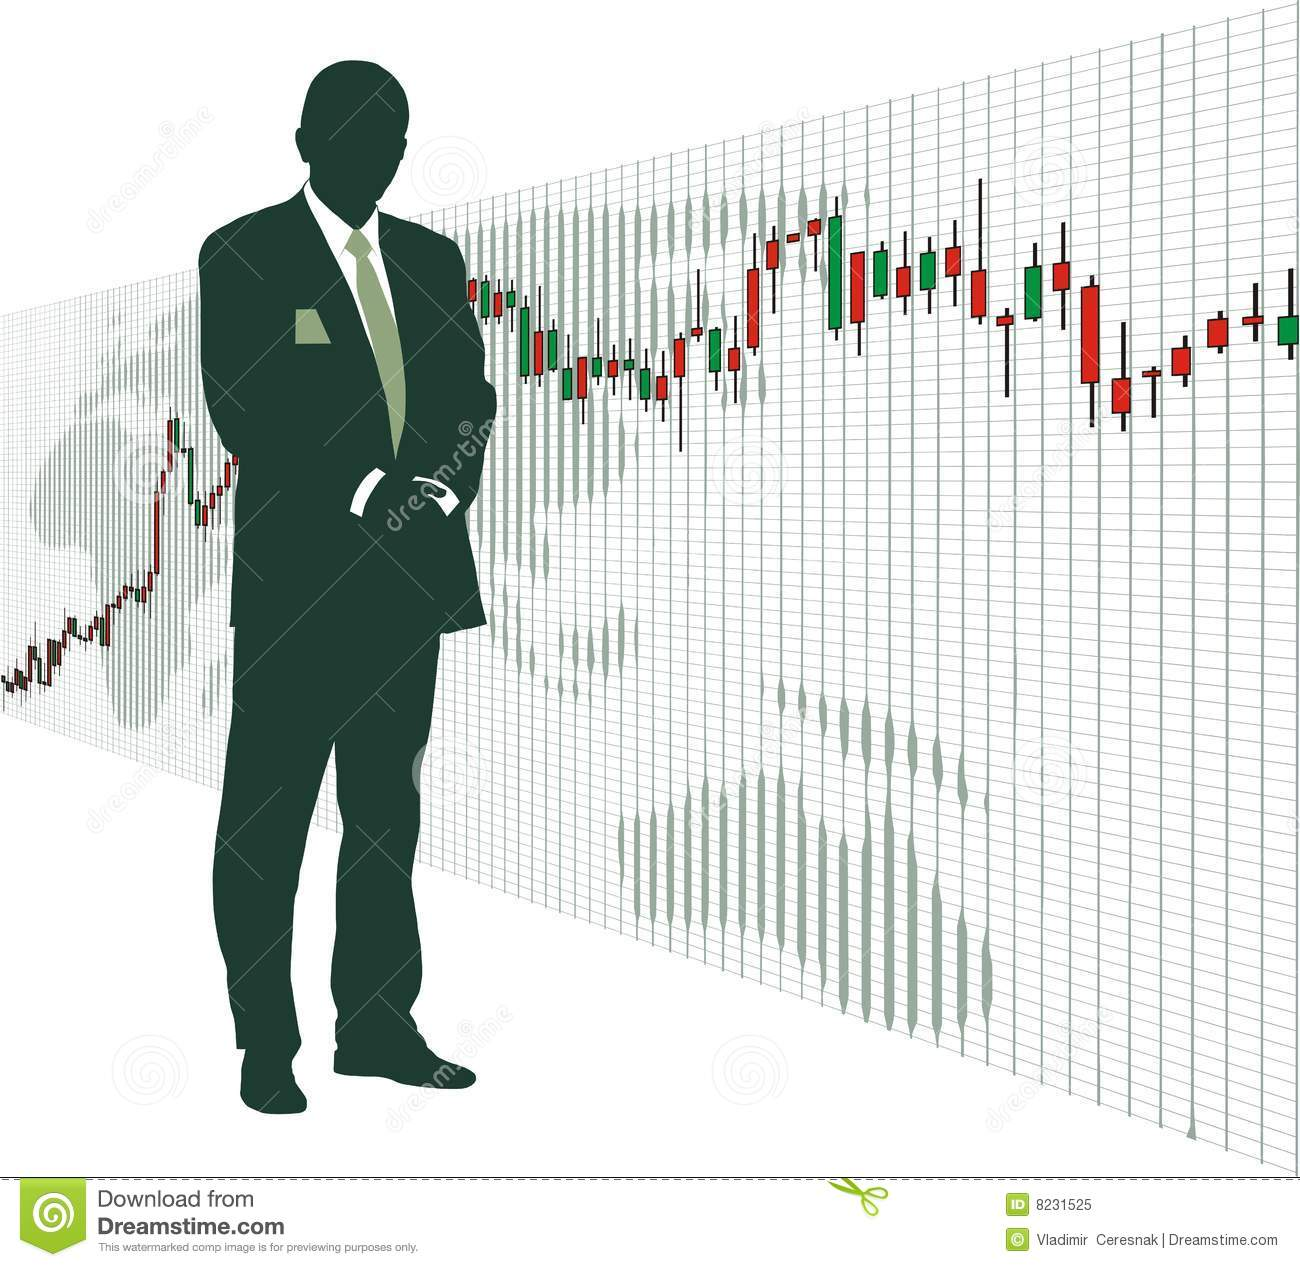 Stock Quotes Free Real Time: Stock Exchange Market Royalty Free Stock Photo